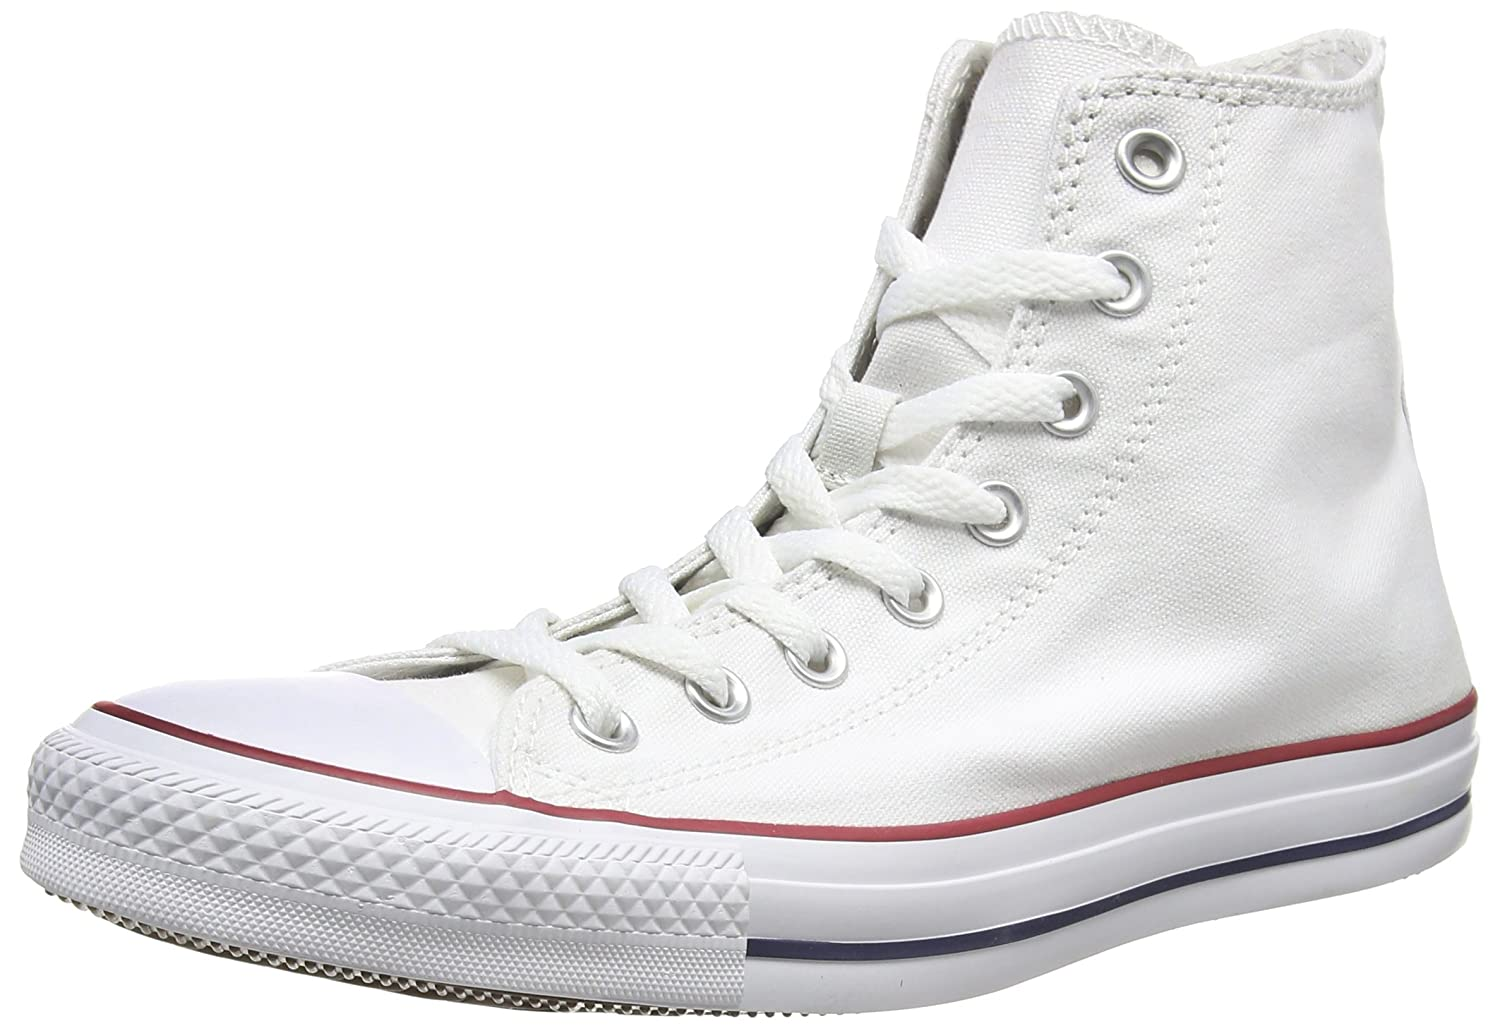 Converse Chuck Taylor All Star Core Hi B01LWKF774 11 Men 13 Women|Optical White